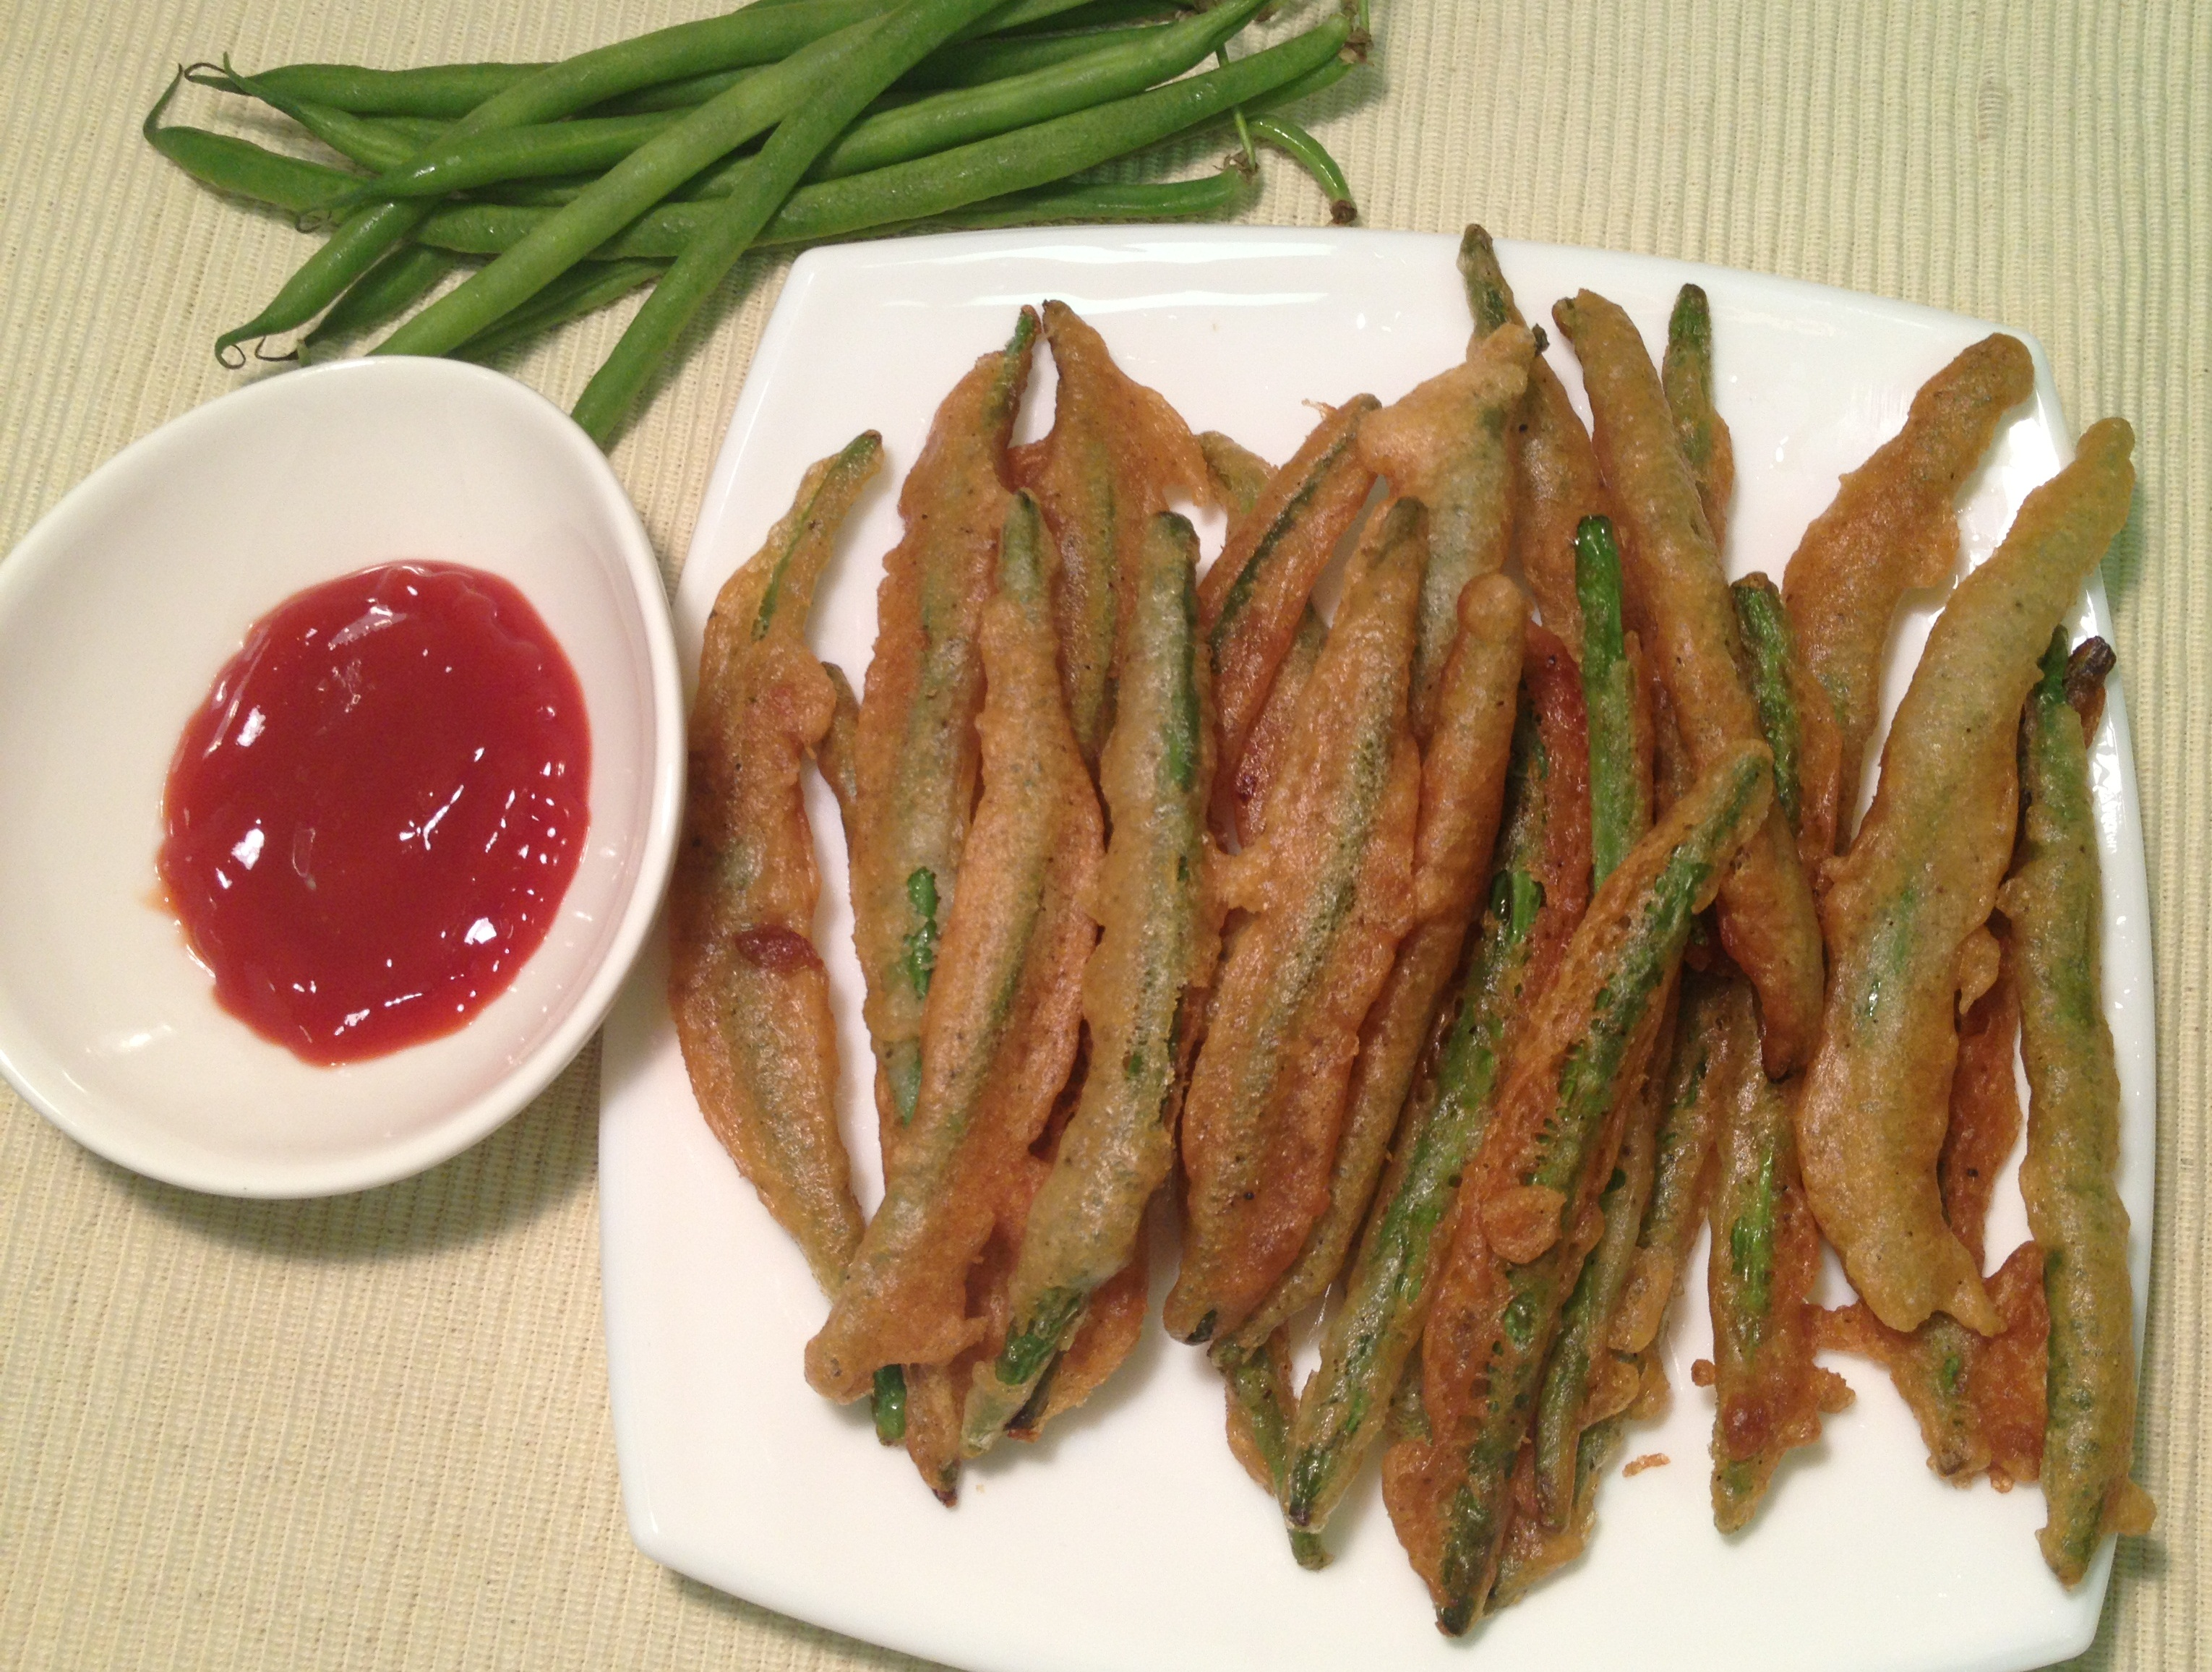 Tempura Green Beans With Tapendade Dip From 'Salty Snacks ...